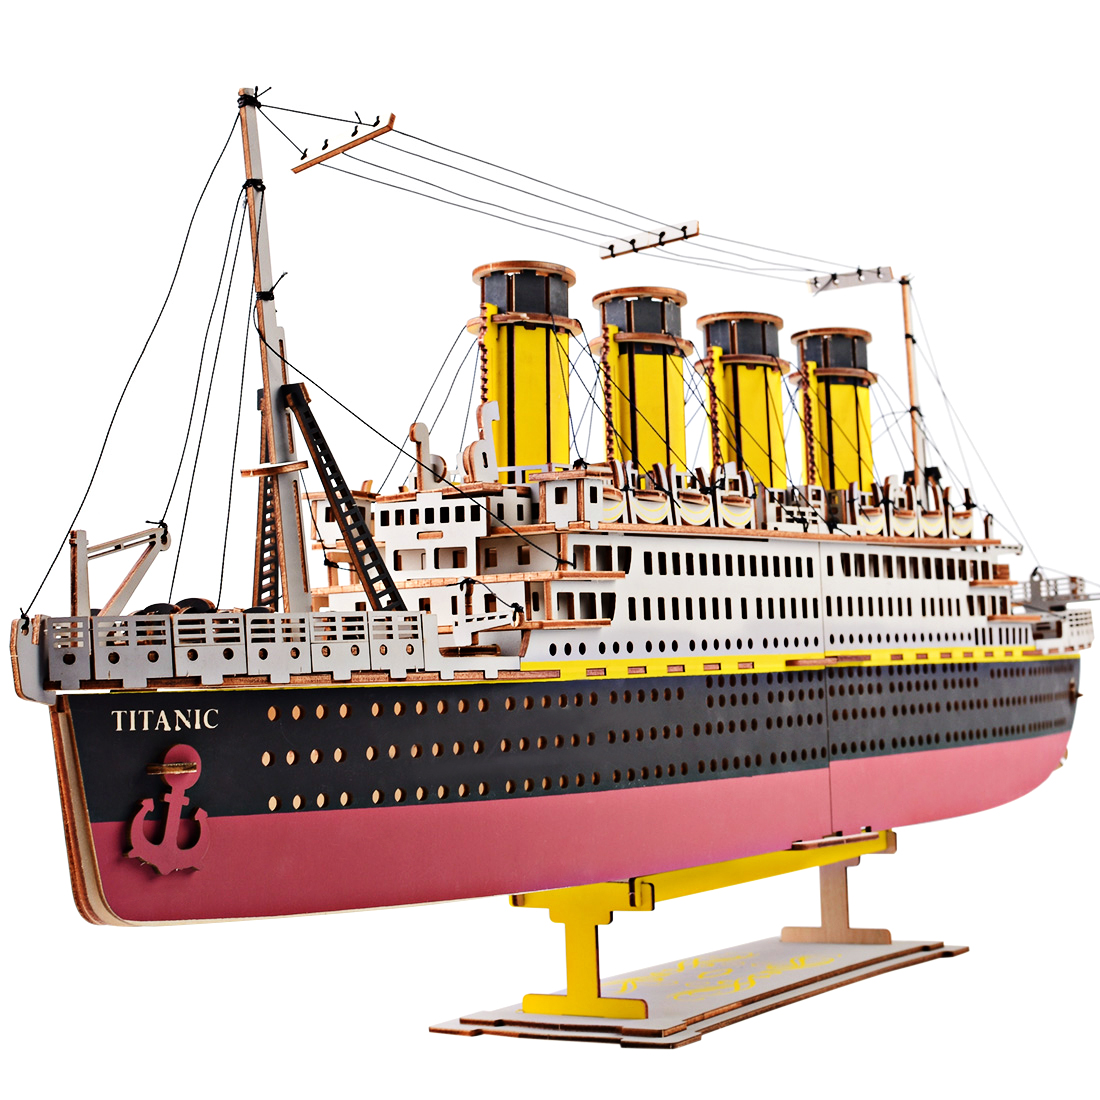 high-precision-laser-cutting-puzzle-3d-wooden-jigsaw-model-children-intelligence-developmental-toys-model-building-kit--font-b-titanic-b-font